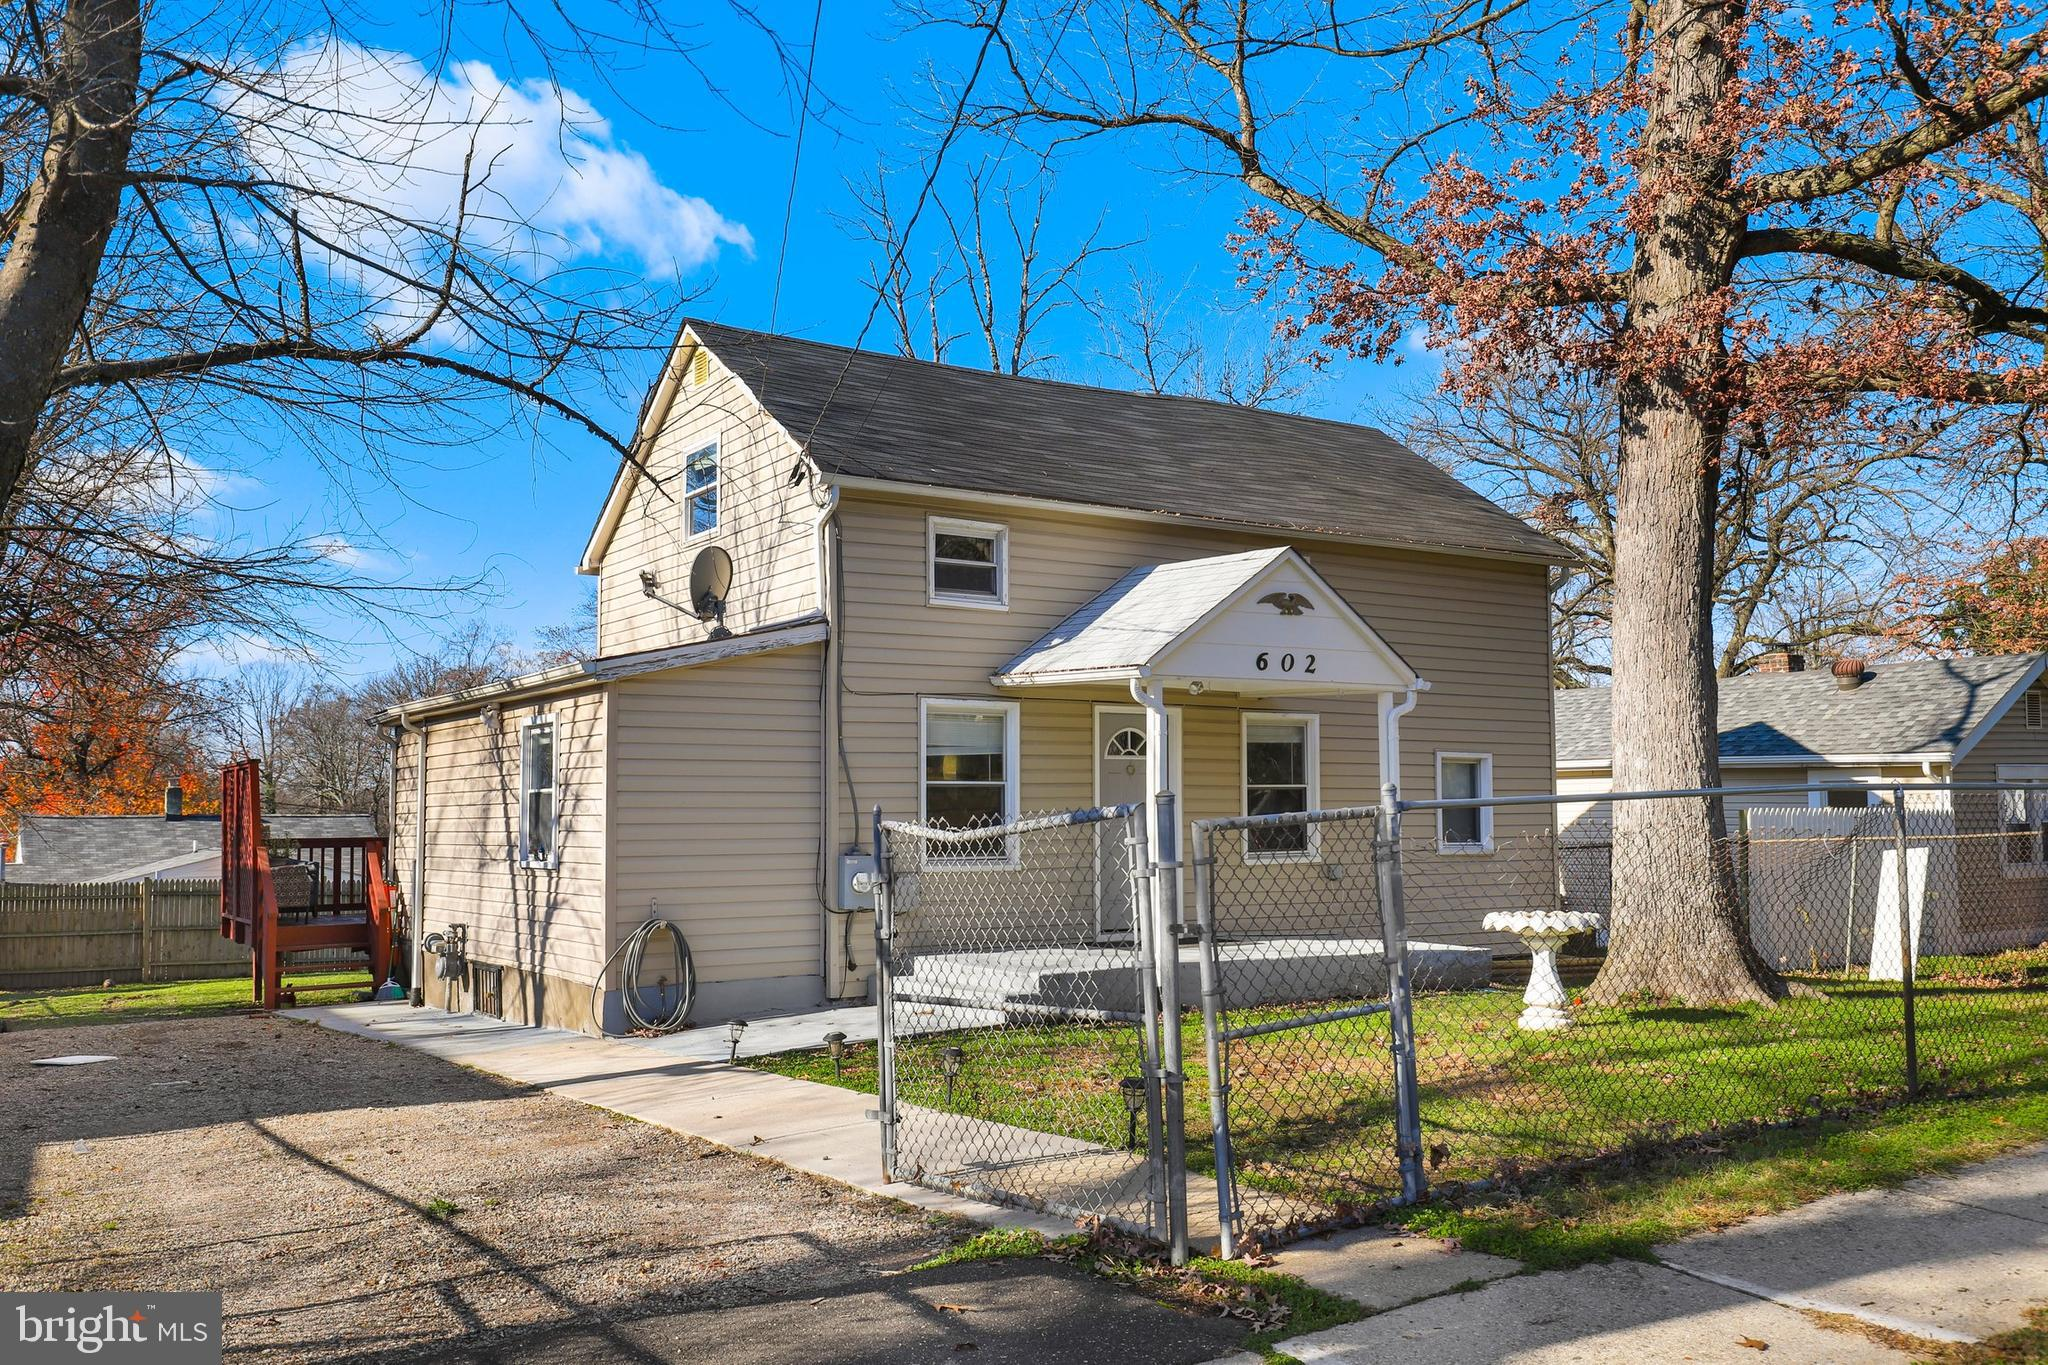 This charming 3 bedroom, 2.5 bathroom home was fully renovated in 2015 and has been well maintained